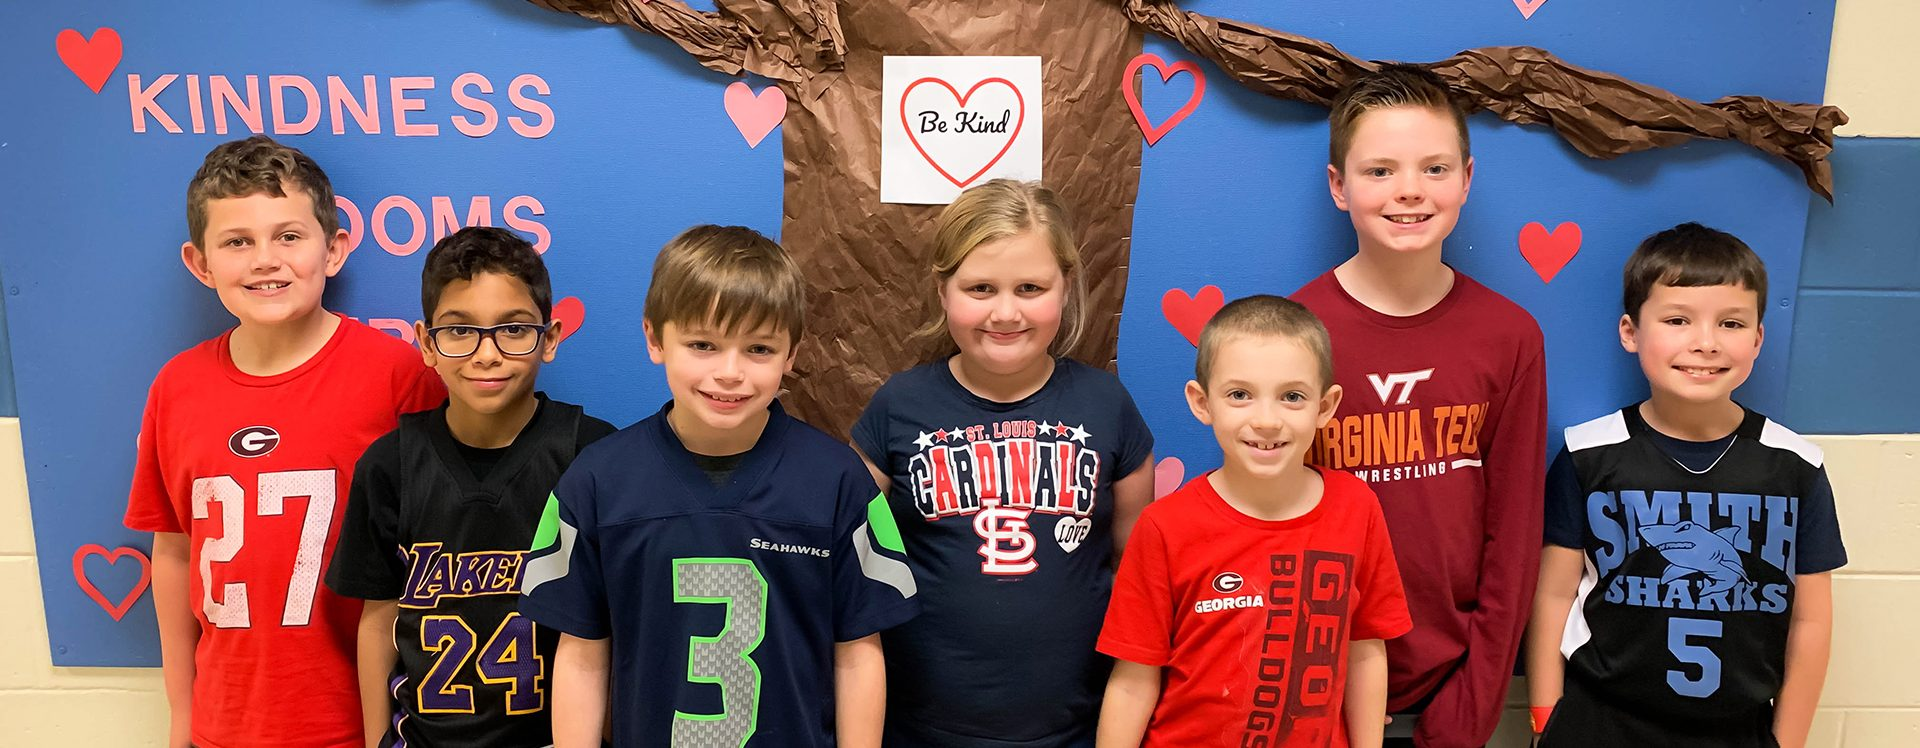 Seven students standing in front of a kindness tree display in the hallway.